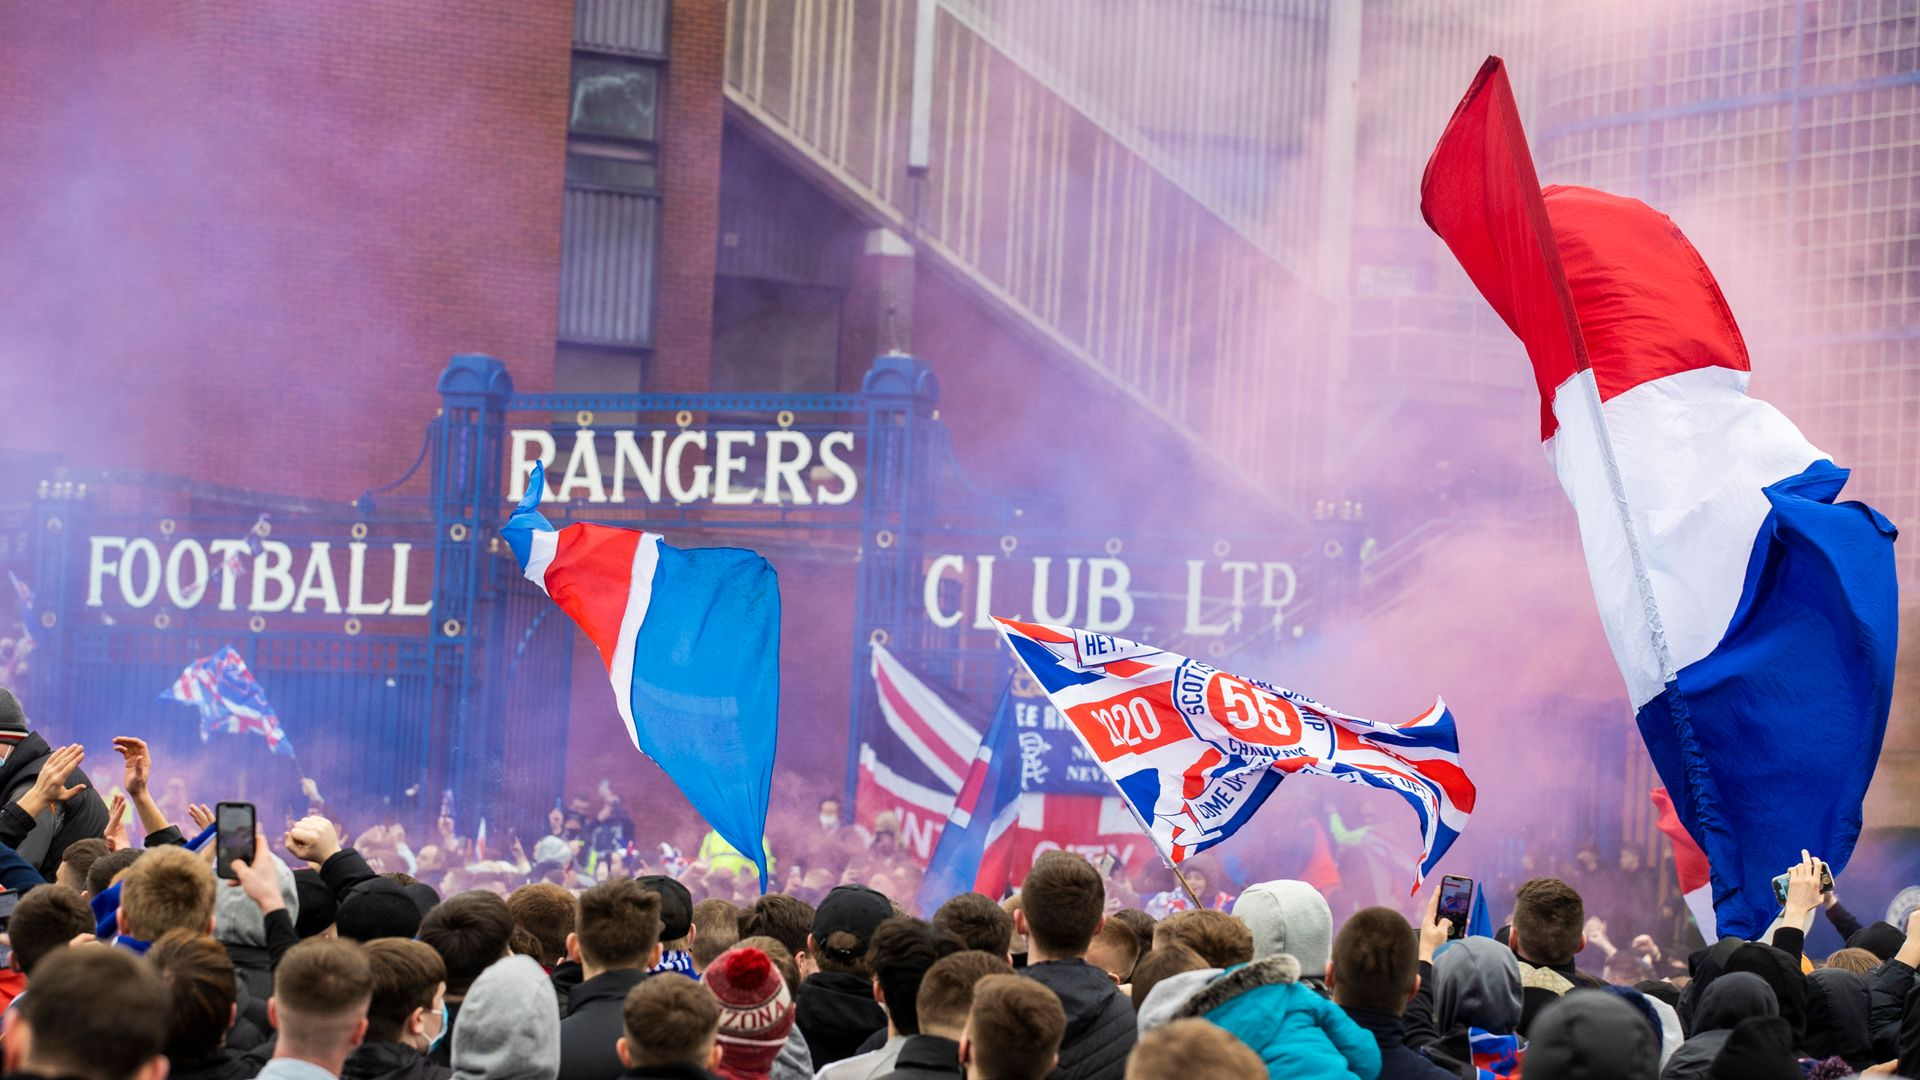 Rangers fans break lockdown to gather at Ibrox